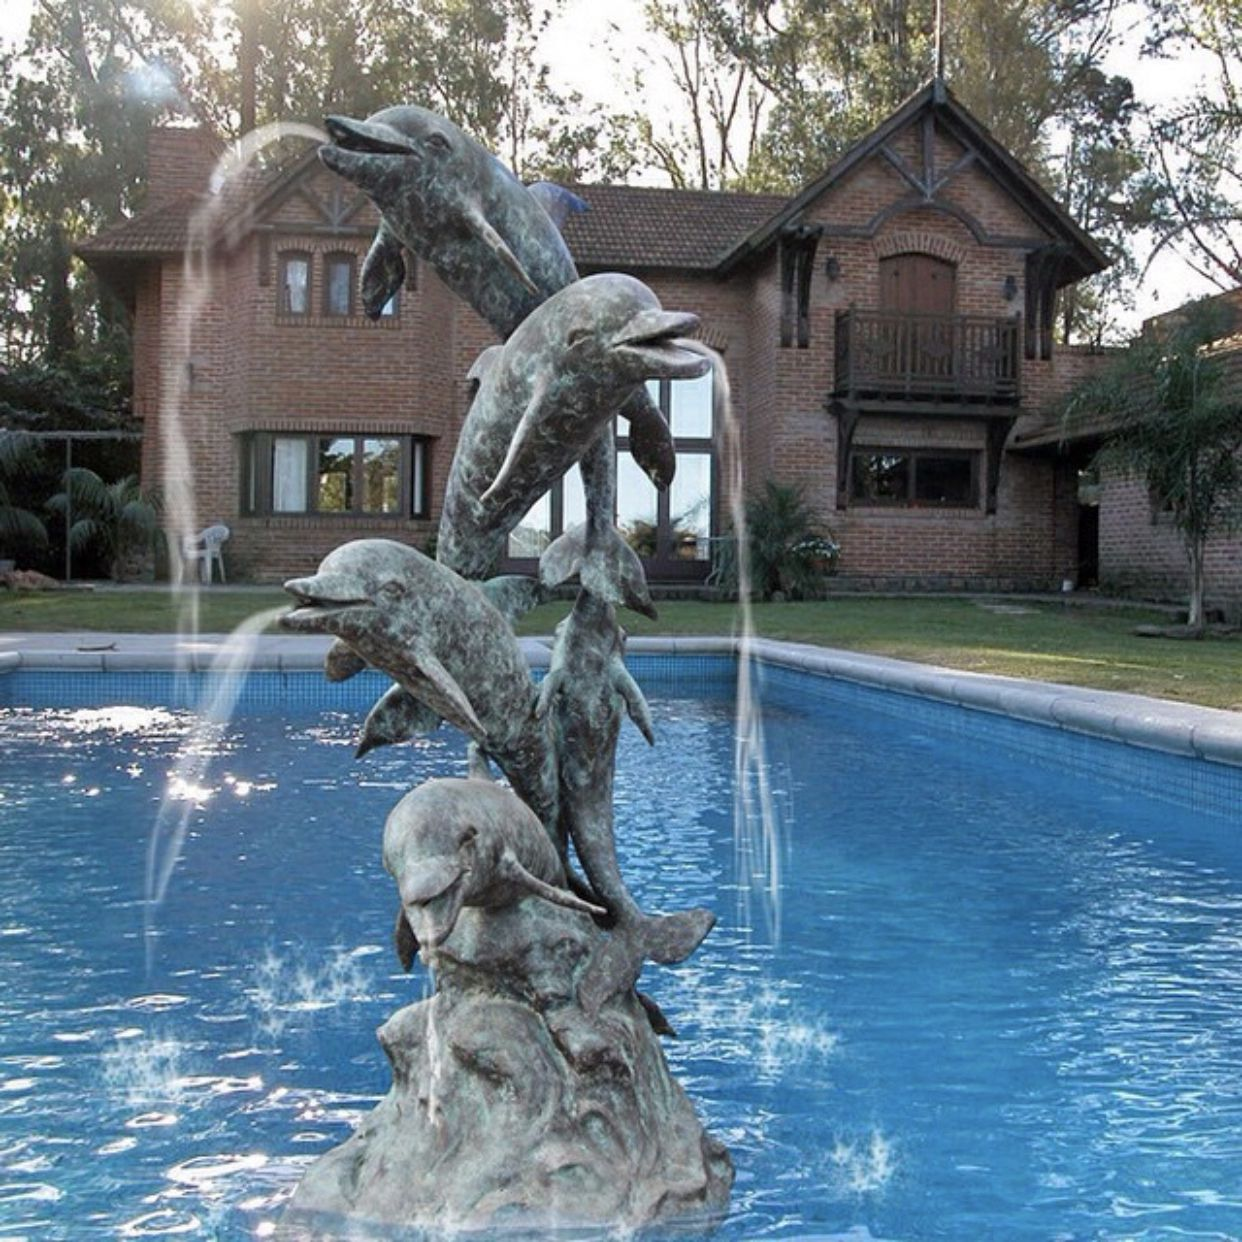 dolphin fountain is sculpted in the pool